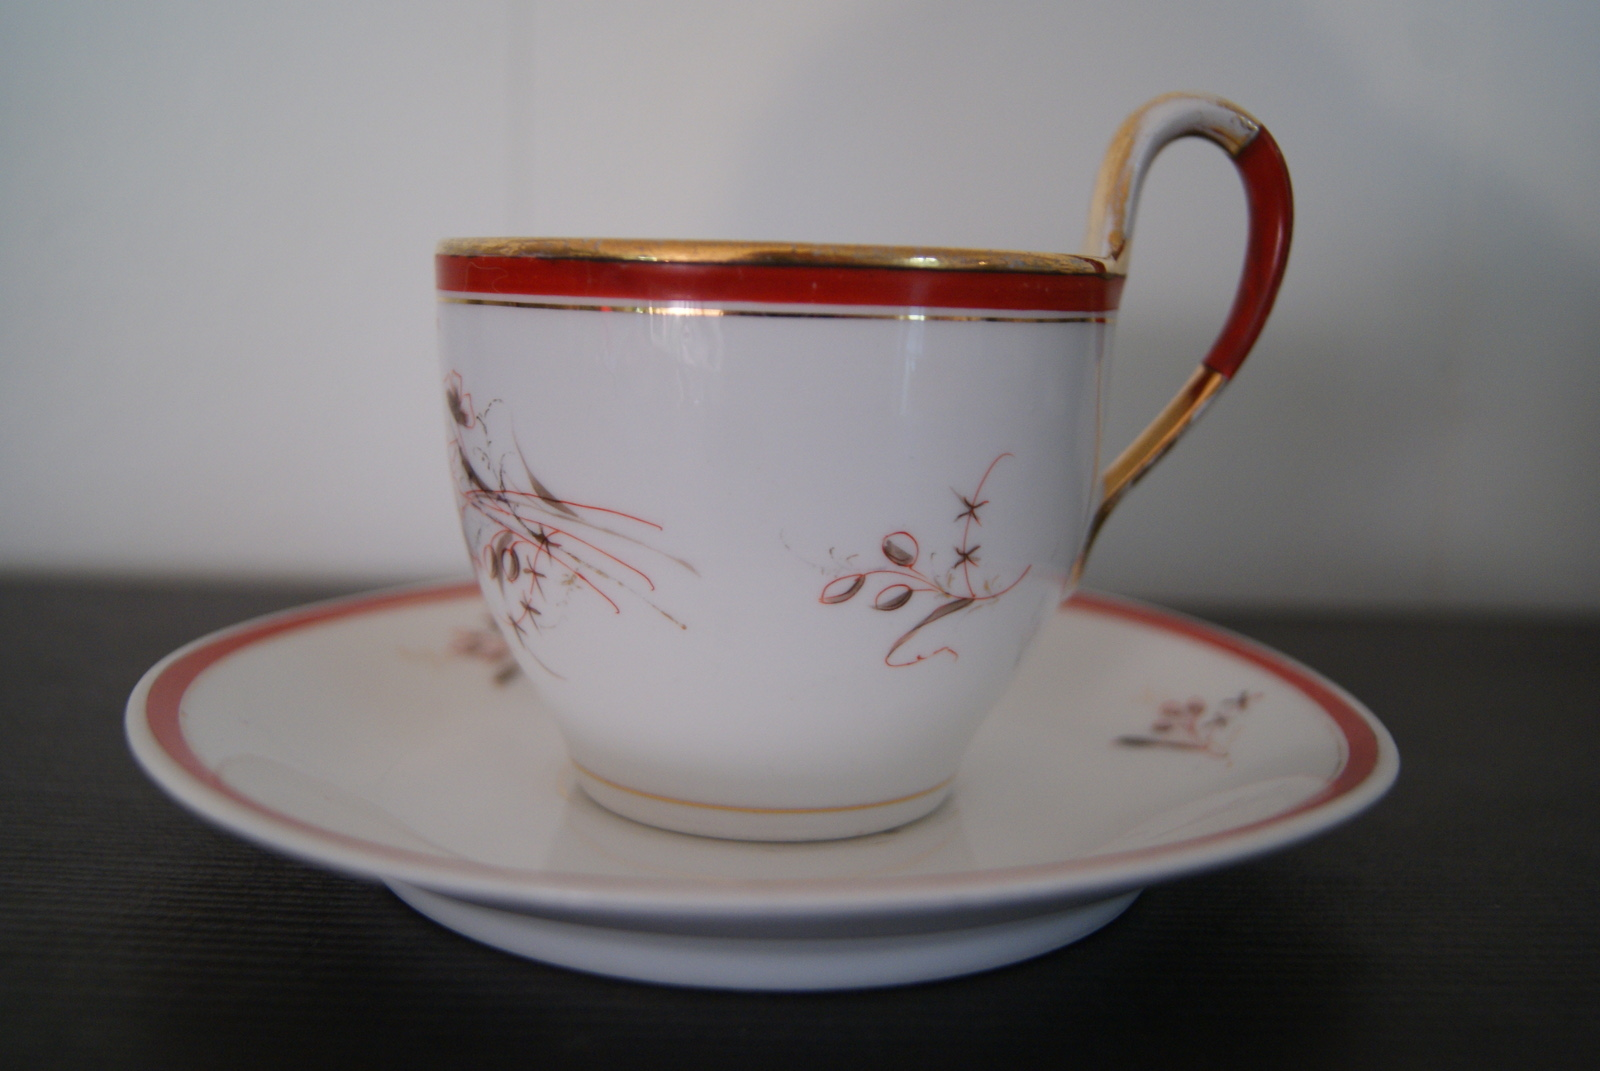 Waldenburg - Altwasser coffee cup with saucer with flowers and leaves